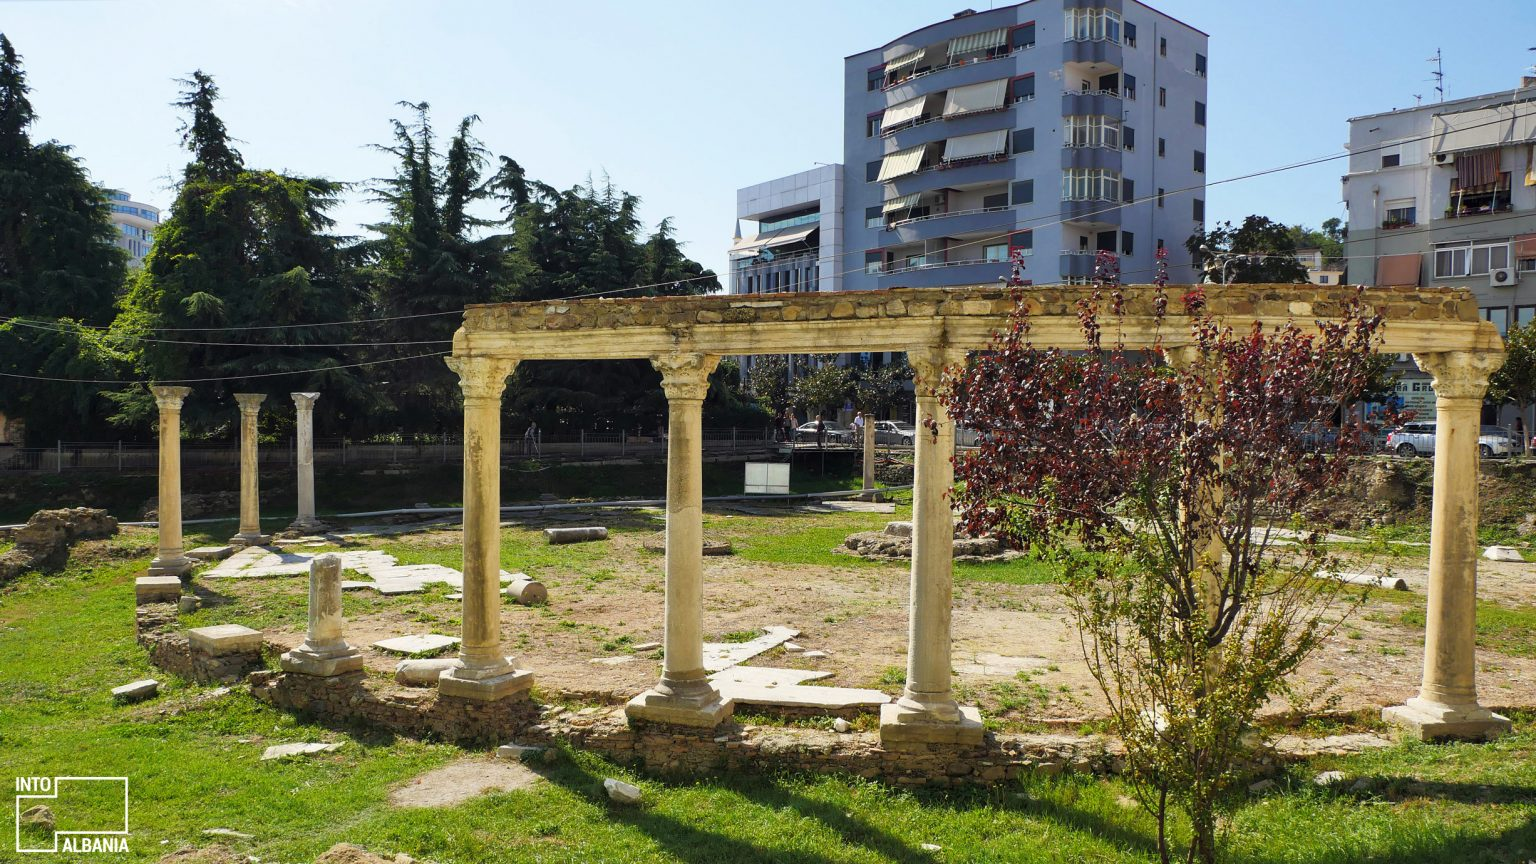 Byzantine Forum in Durrës, photo by IntoAlbania